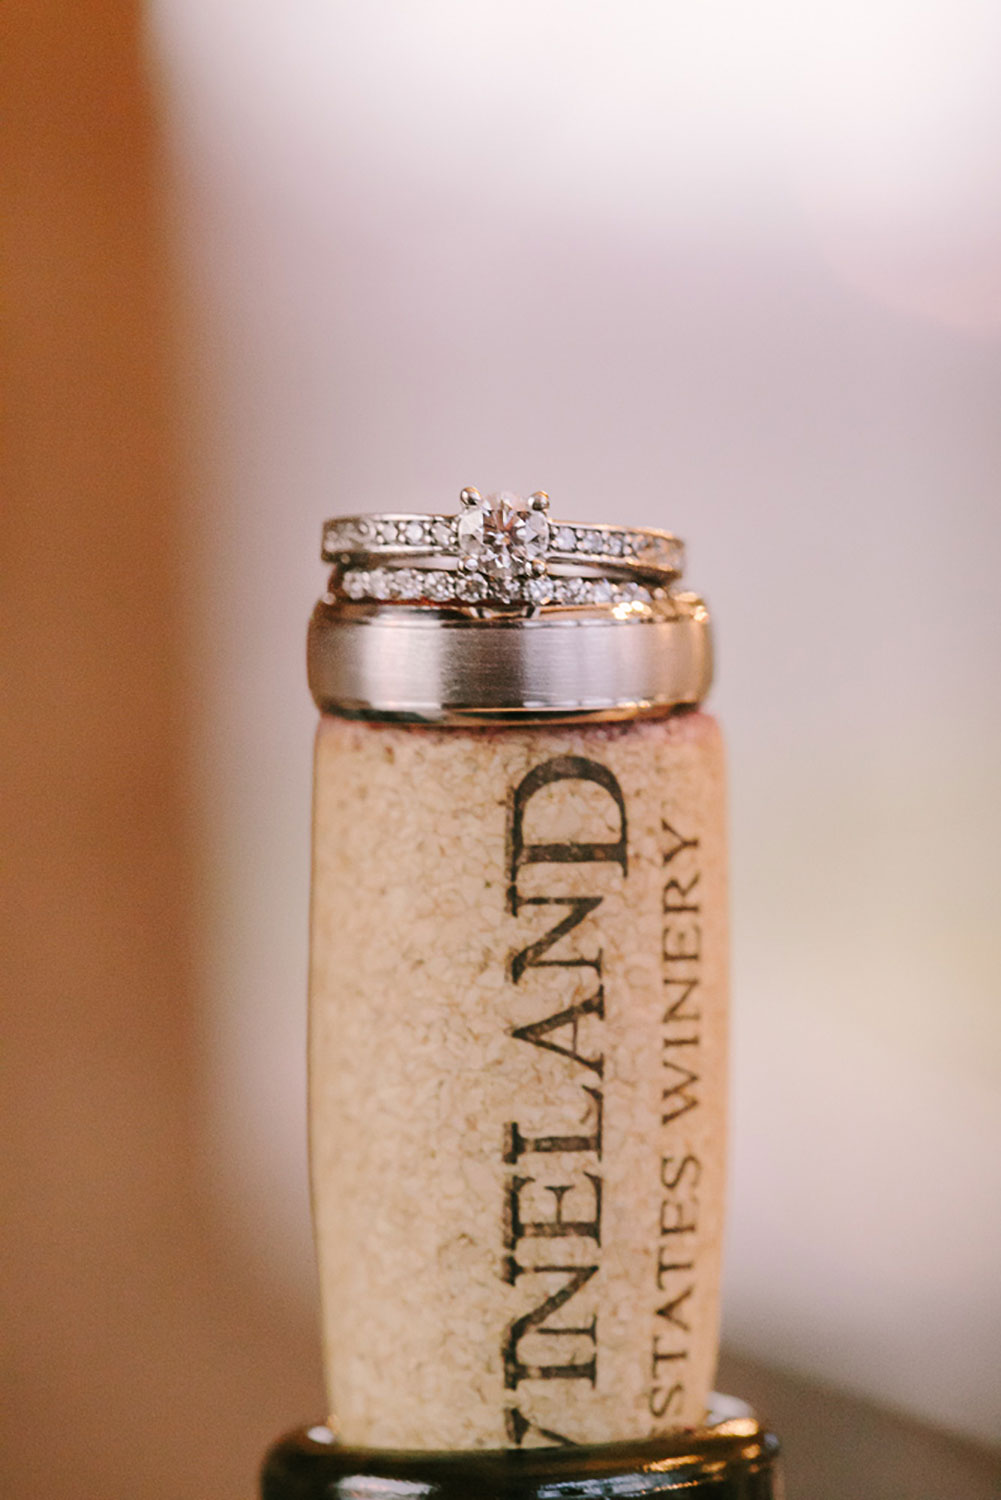 Vineland-Estates-Wedding-Vineyard-Bride-Photo-By-Tamara-Lockwood-Photography-031.jpg